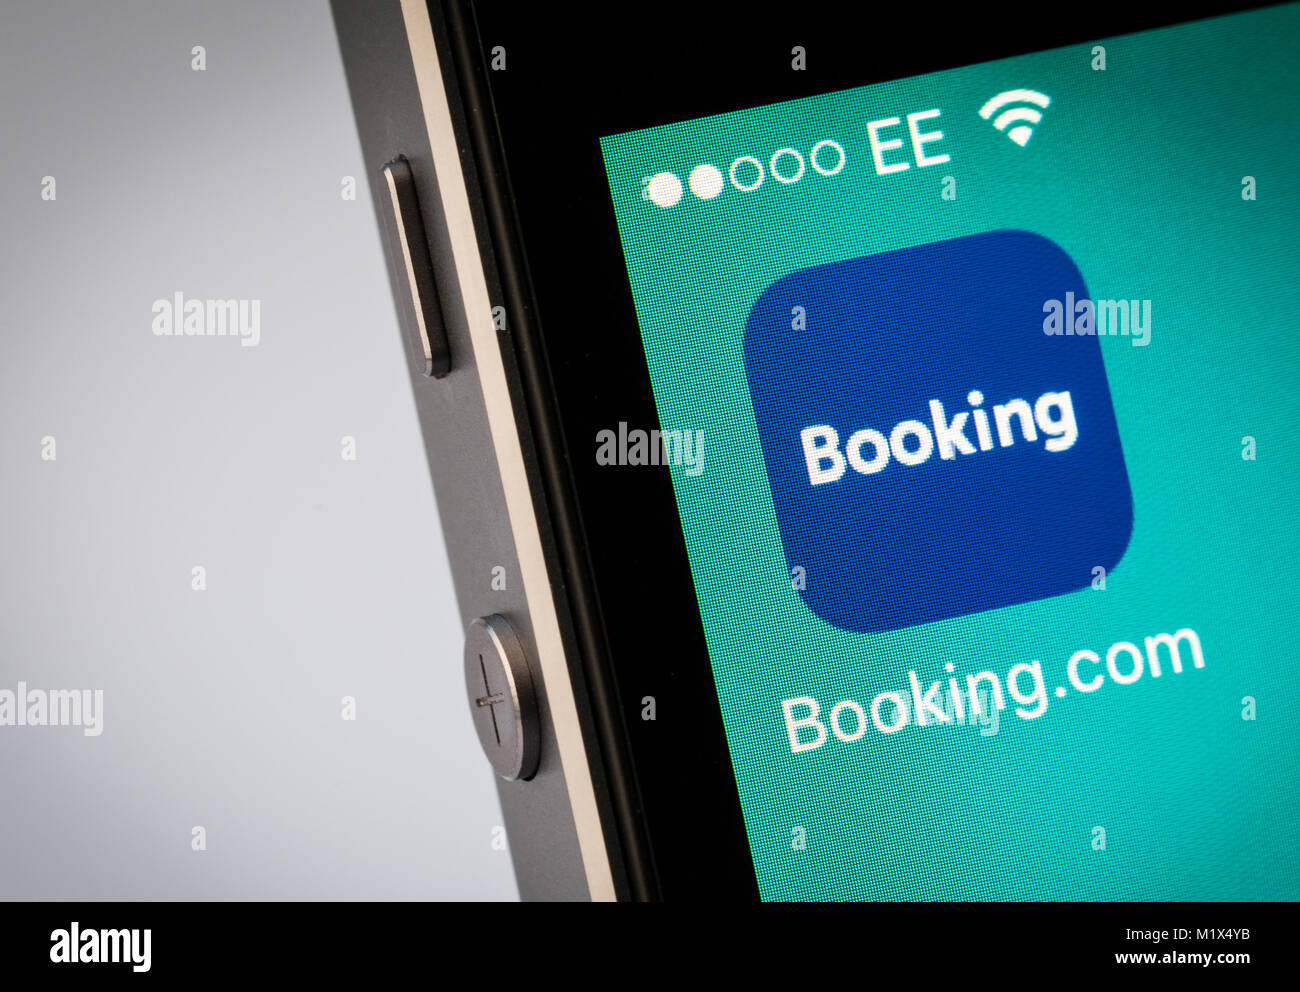 Booking.com app on an iPhone mobile phone - Stock Image